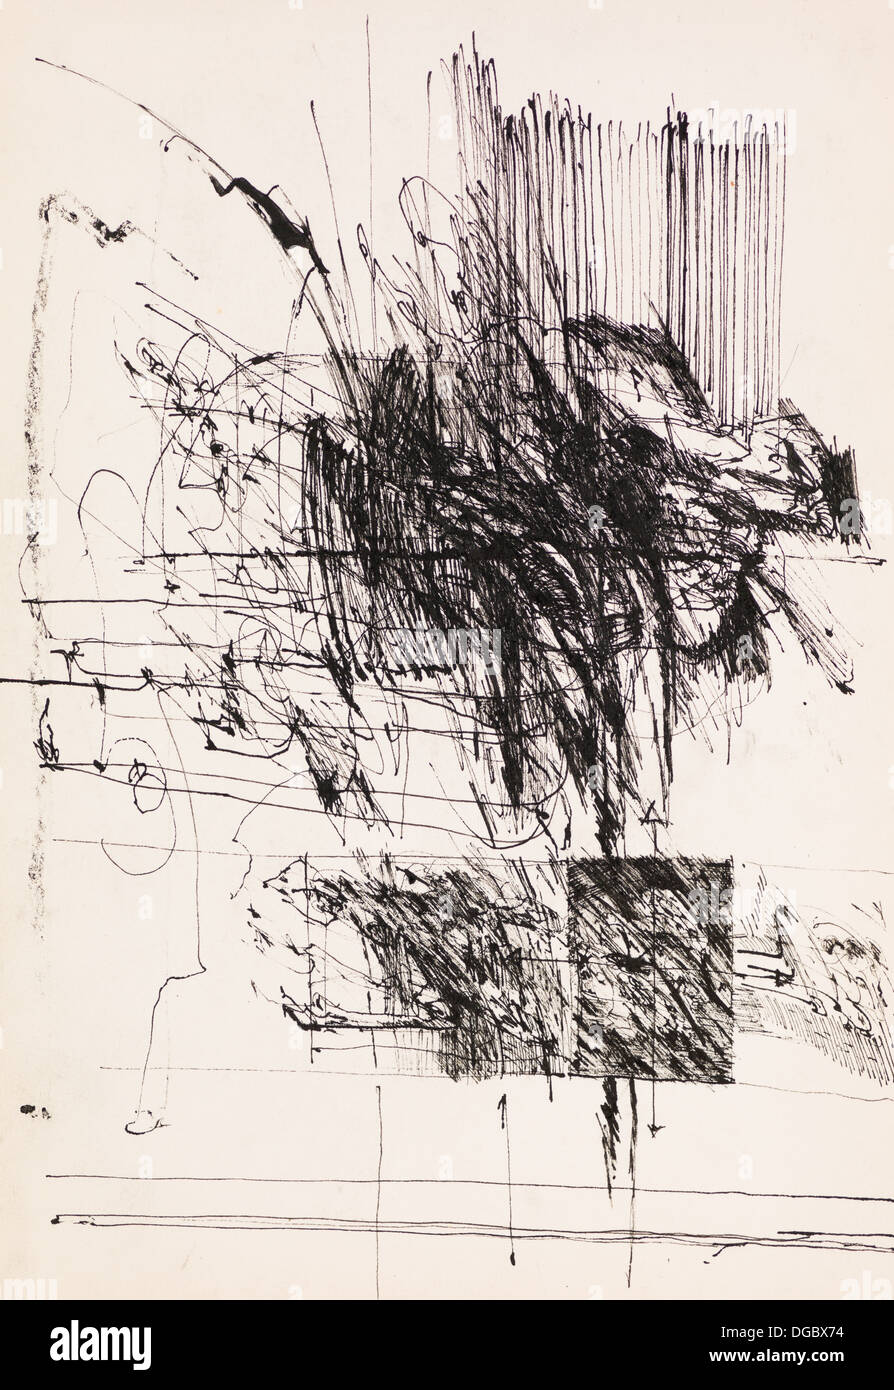 abstract black ink illustration on old paper stock photo 61727656